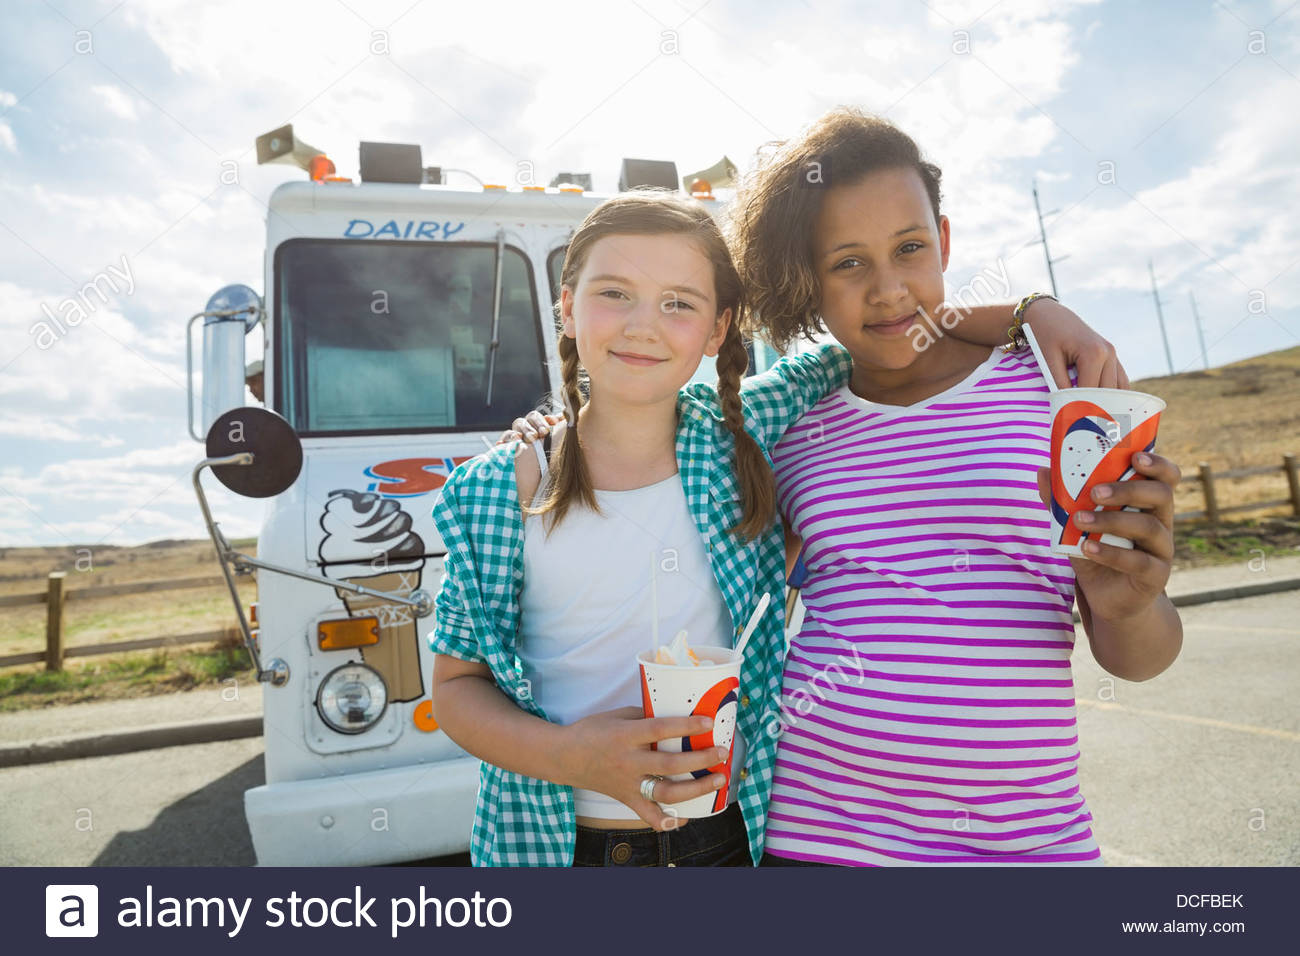 Portrait of girls holding ice cream cups outdoors - Stock Image